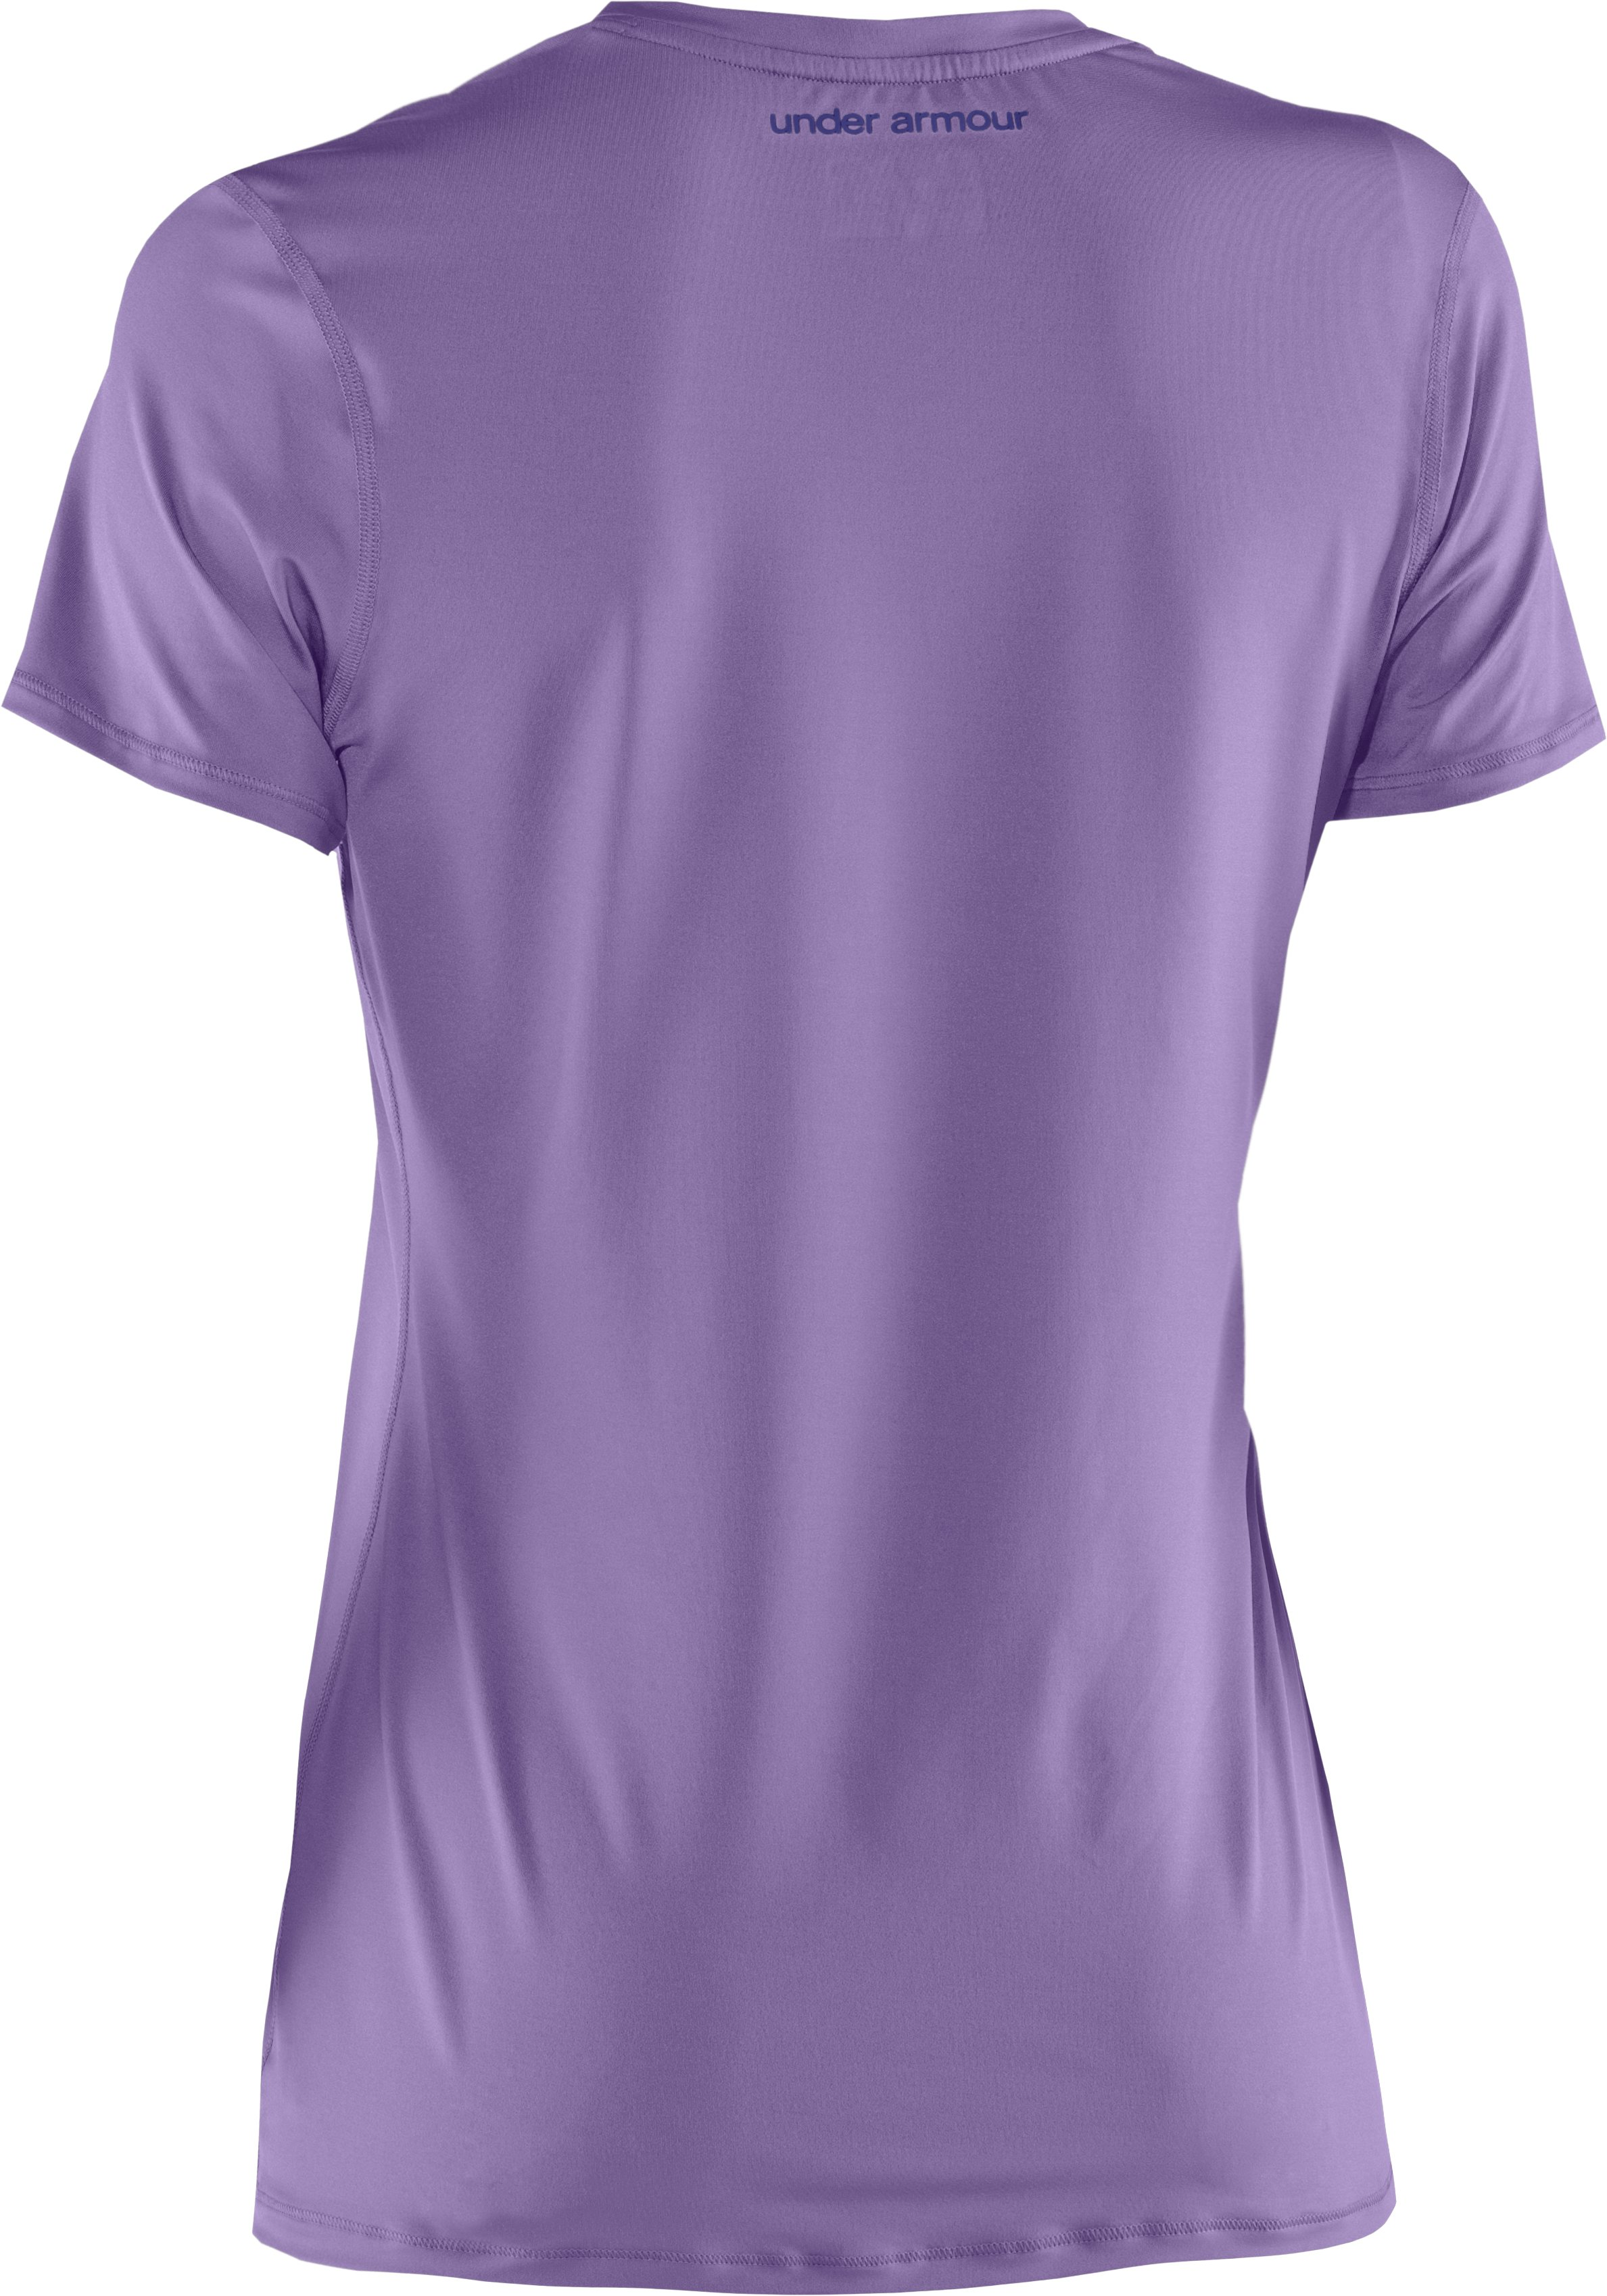 Women's HeatGear® Sonic Short Sleeve, Petunia, undefined